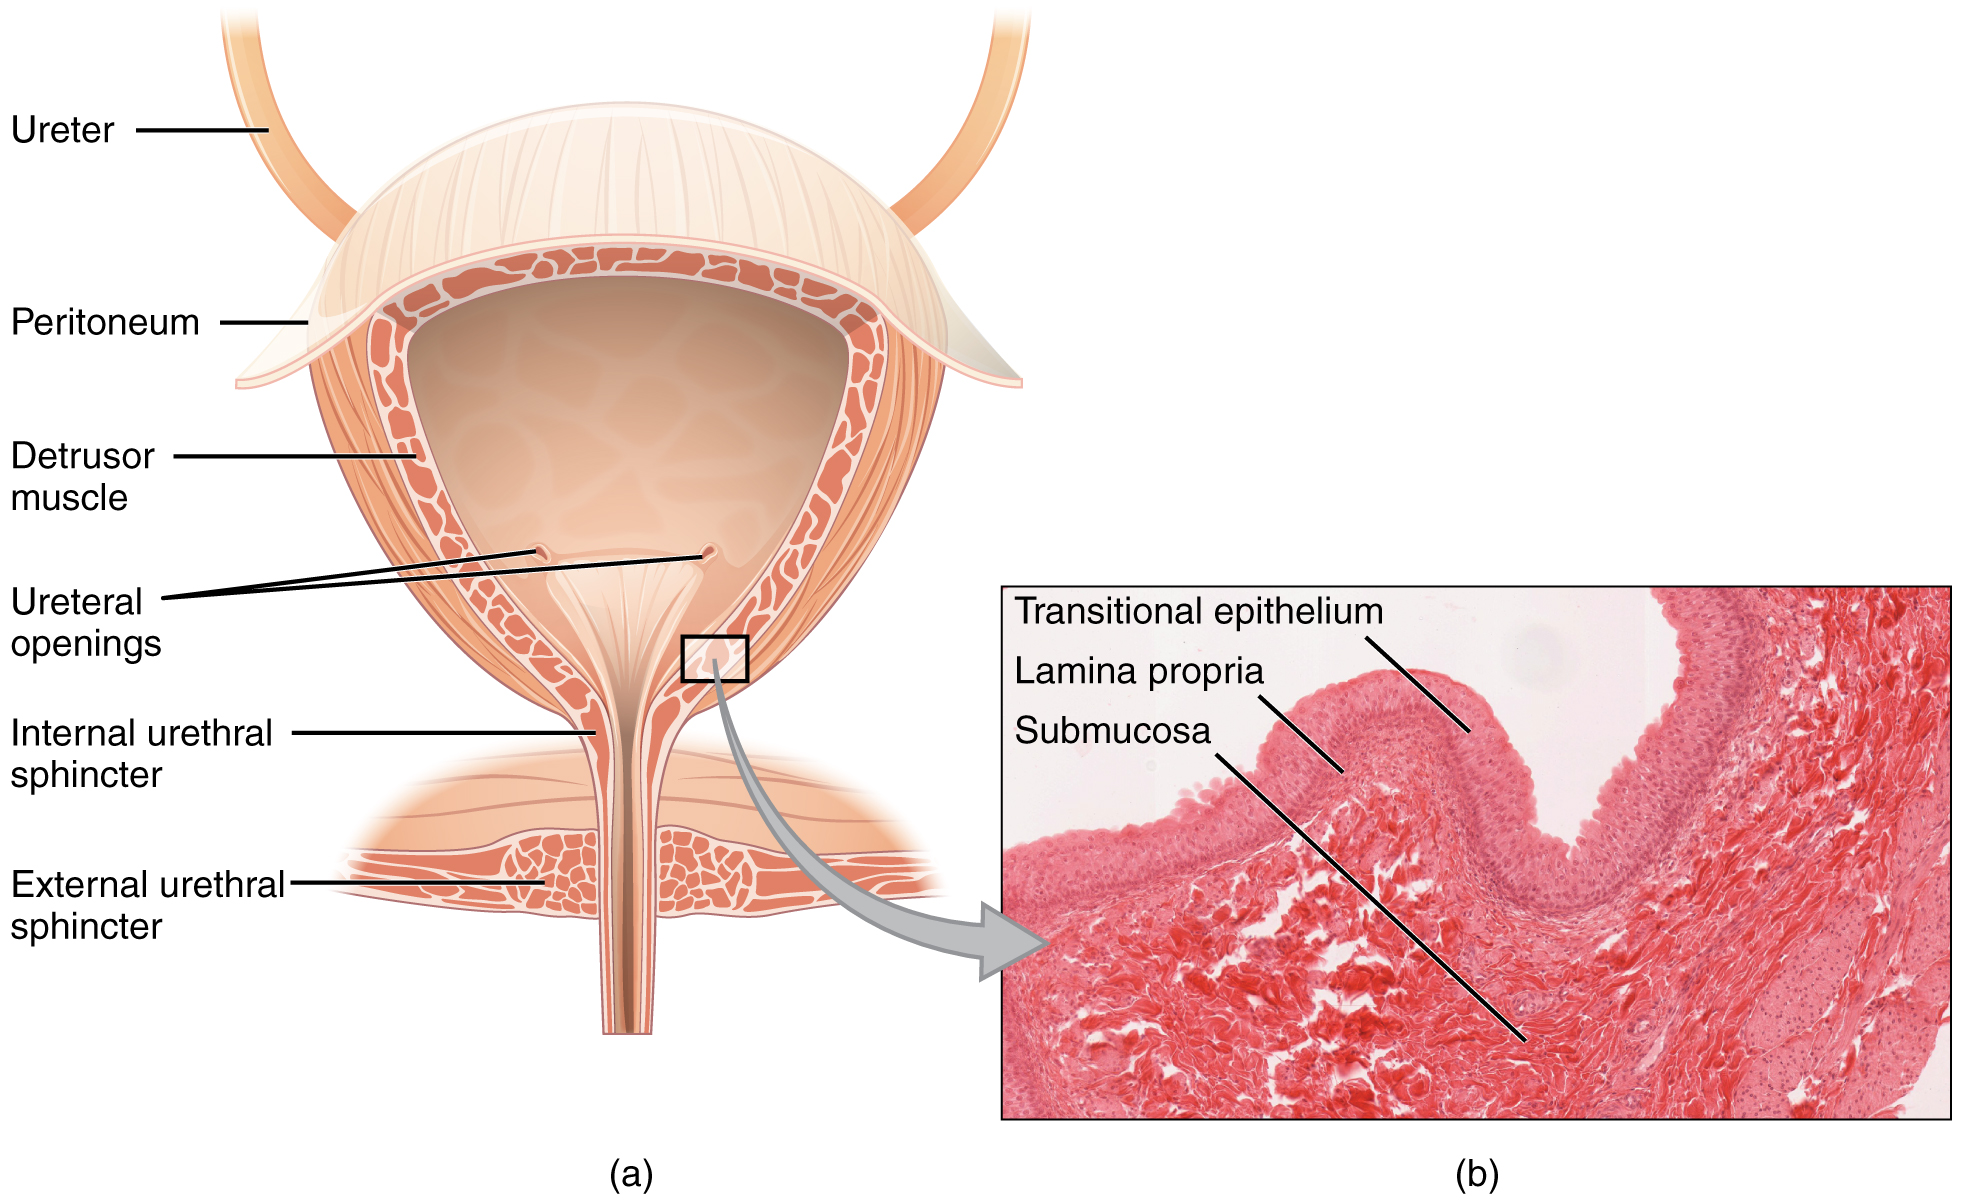 Cross-section of the bladder. Image description available.